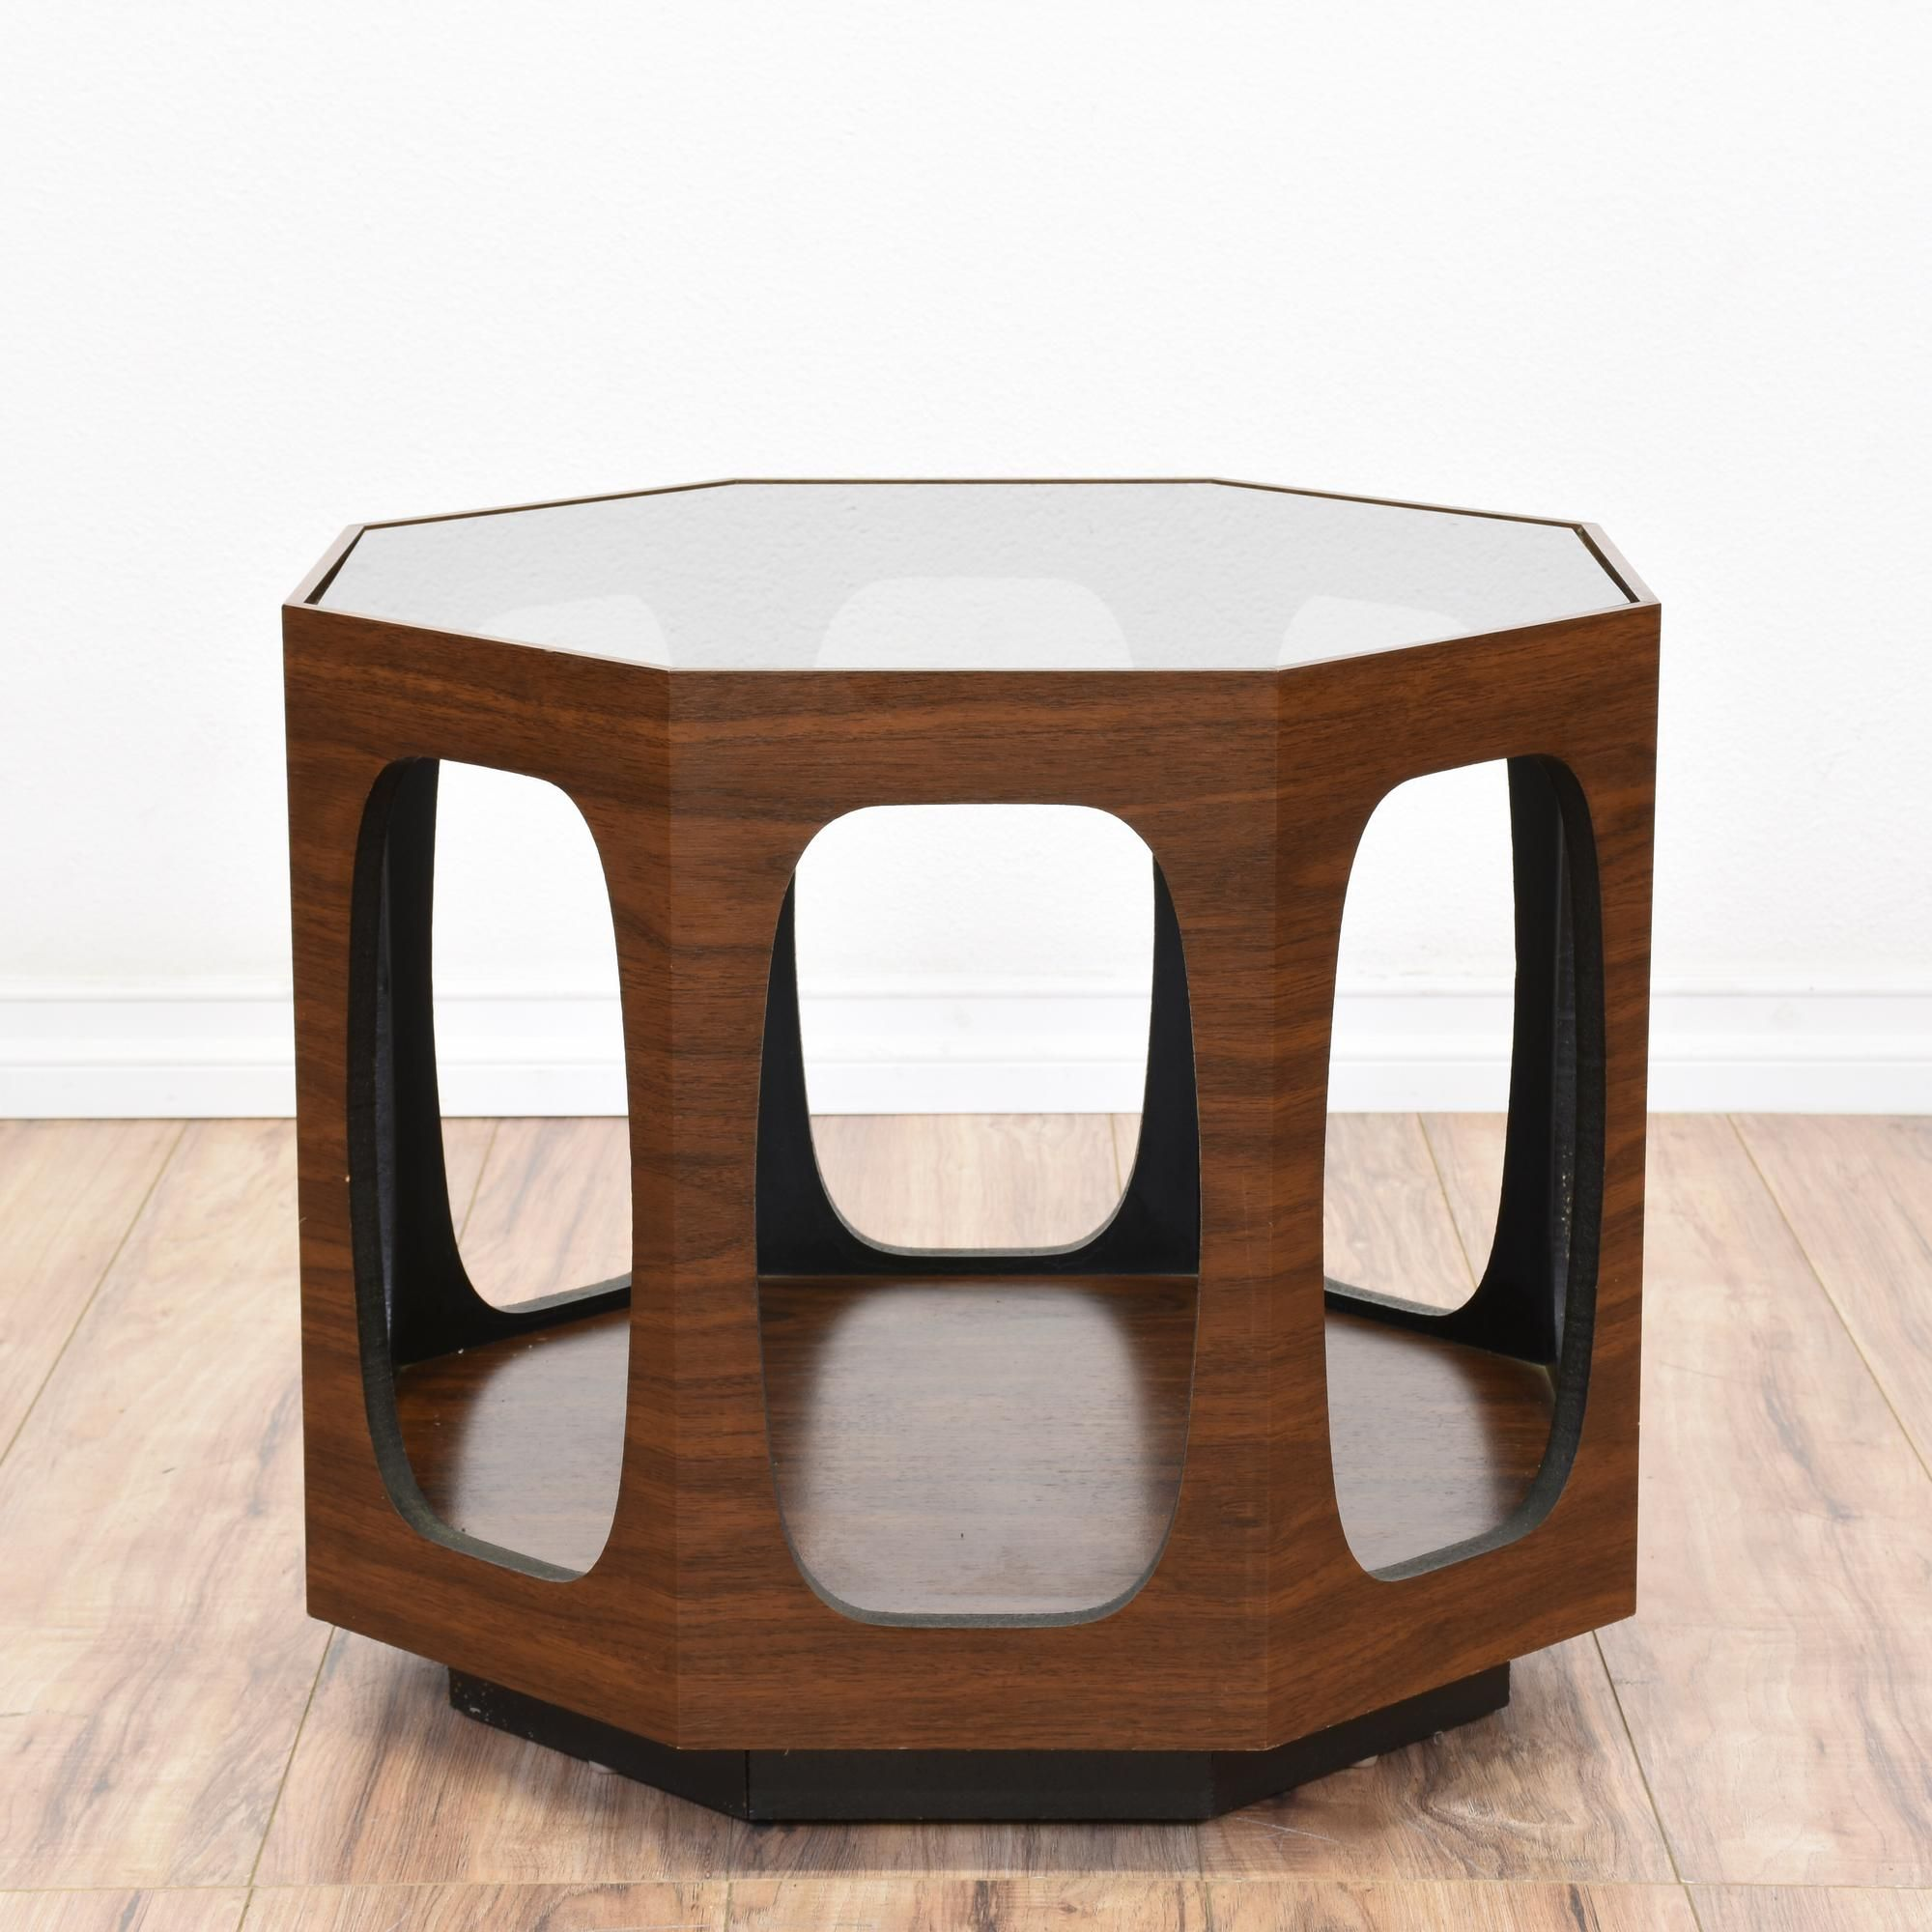 This Mid Century Modern End Table Is Featured In A Wood With A Glossy  Walnut Grain Finish. This Side Table Is In Great Condition With An Octagon  Glass Table ...